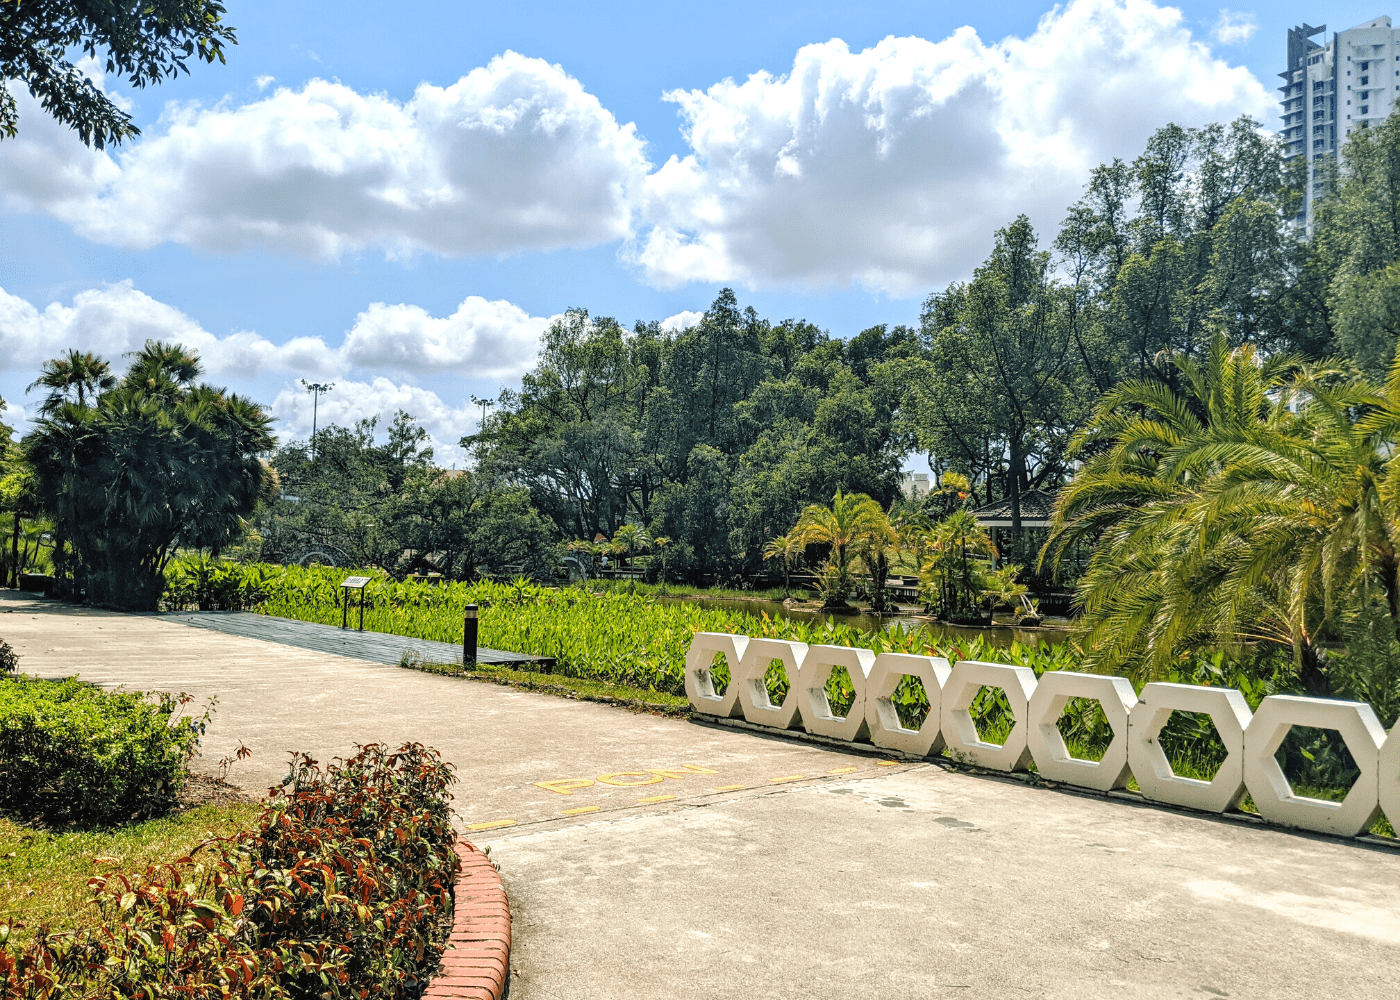 Toa Payoh guide: Toa Payoh Town Park